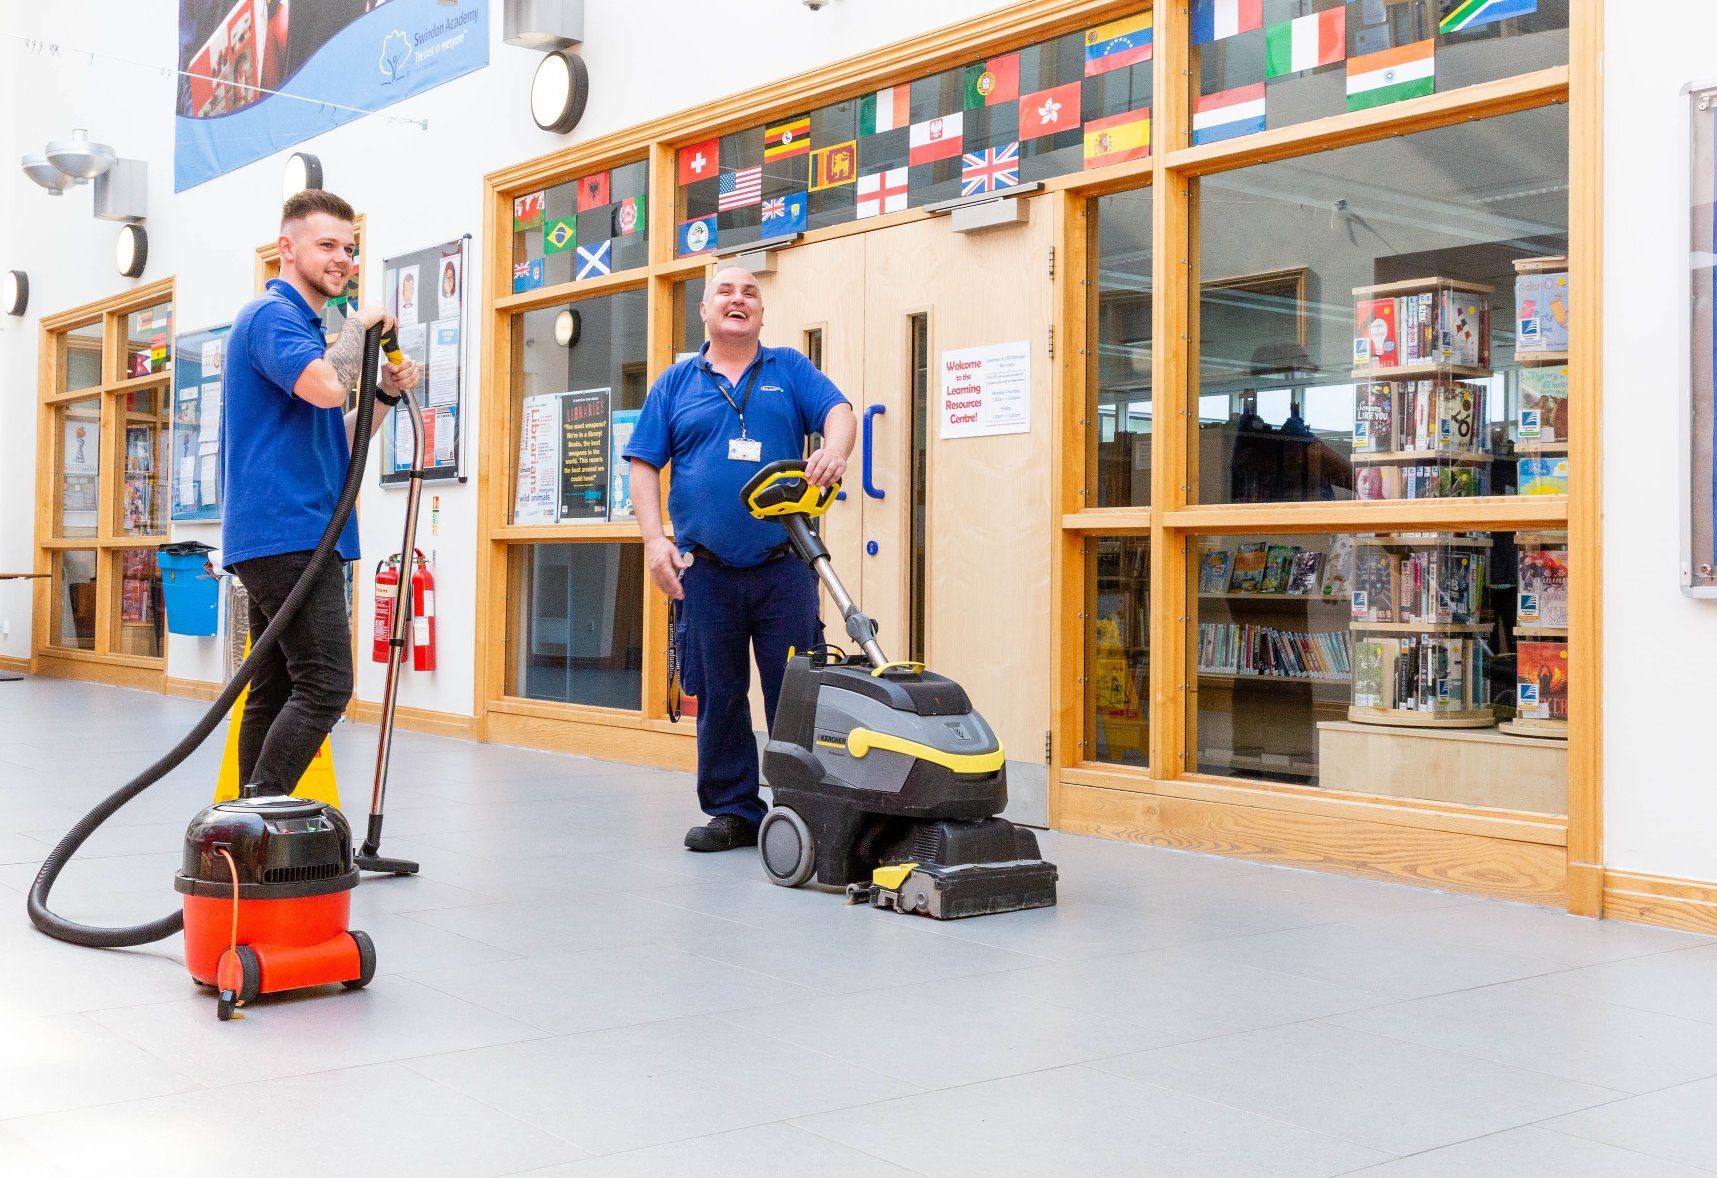 Exclusive Services Group achieves GBAC STAR accreditation to Covid-19 disinfection